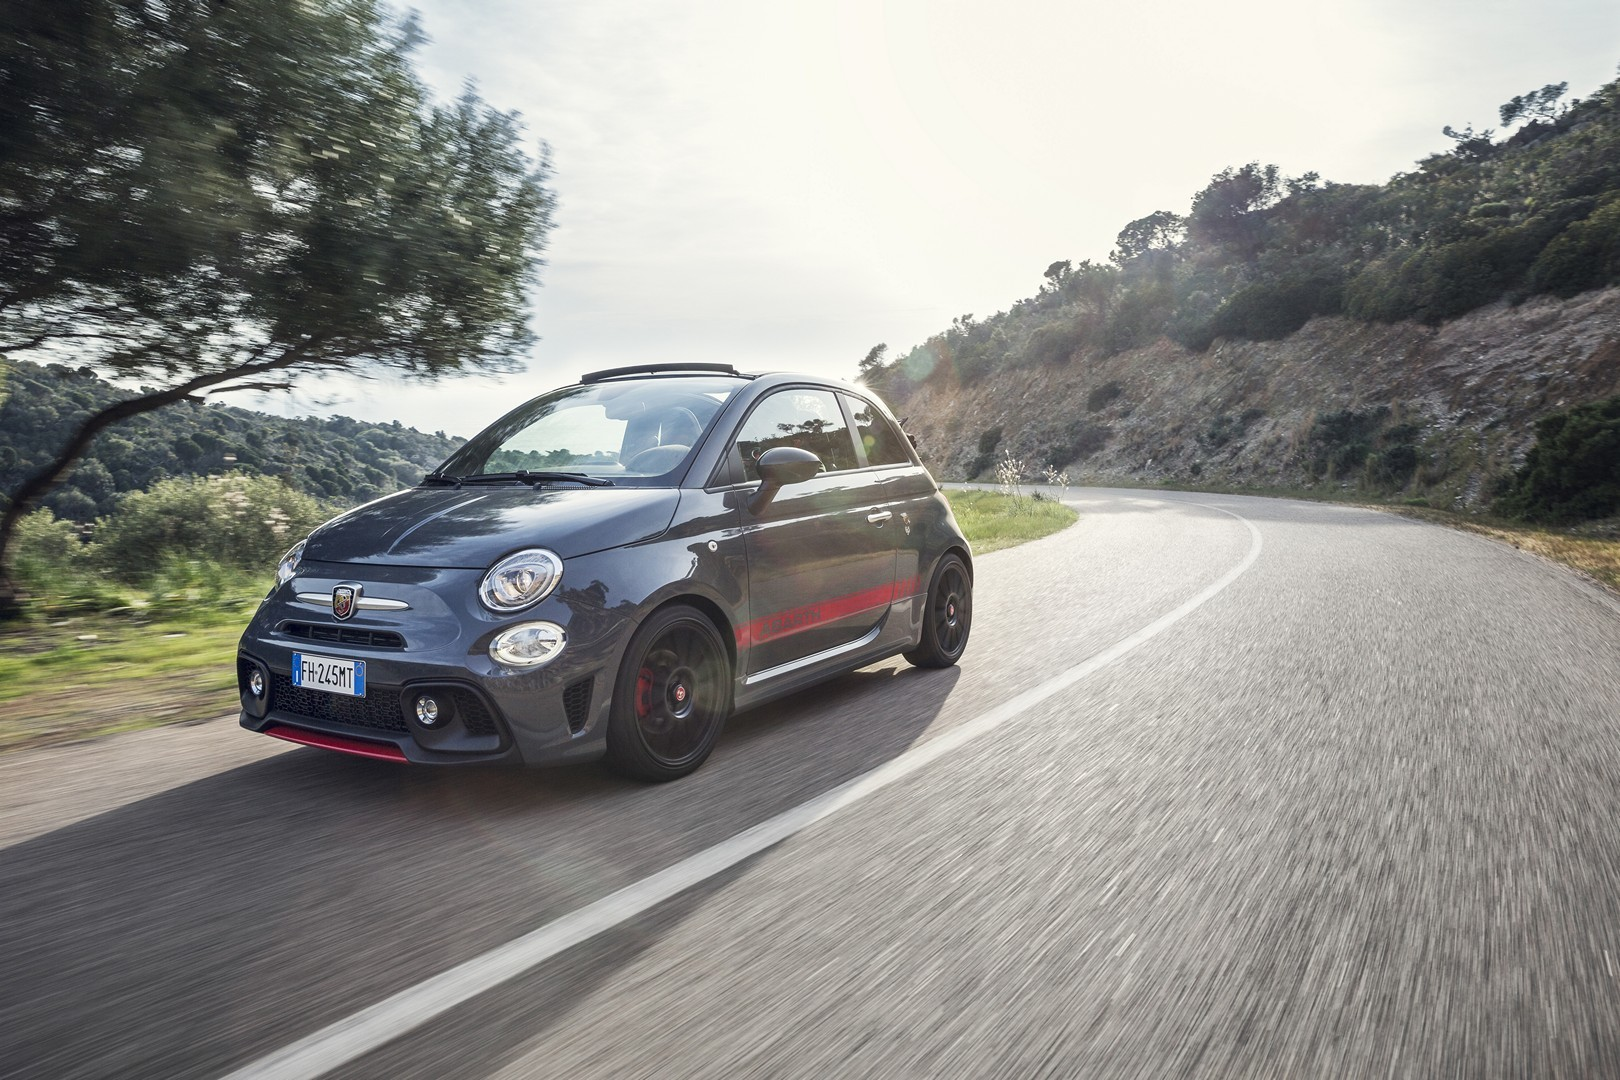 abarth 595 pista and 695 xsr yamaha photos will have fiat fans salivating autoevolution. Black Bedroom Furniture Sets. Home Design Ideas